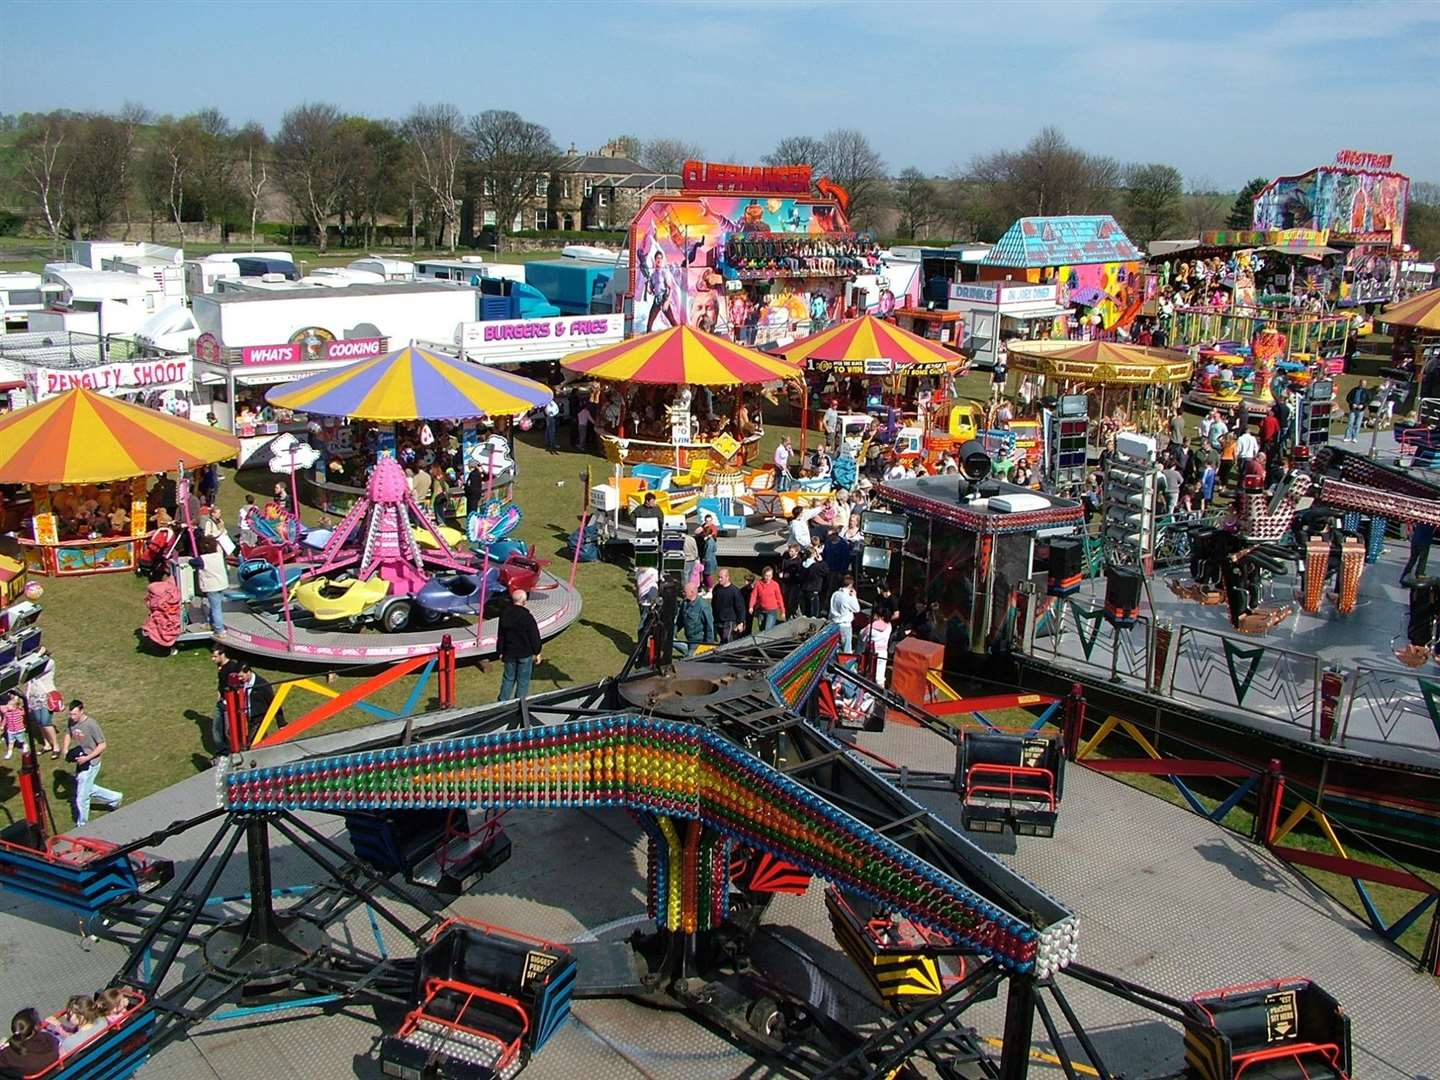 The Stamford October fair starts on Wednesday (4652398)